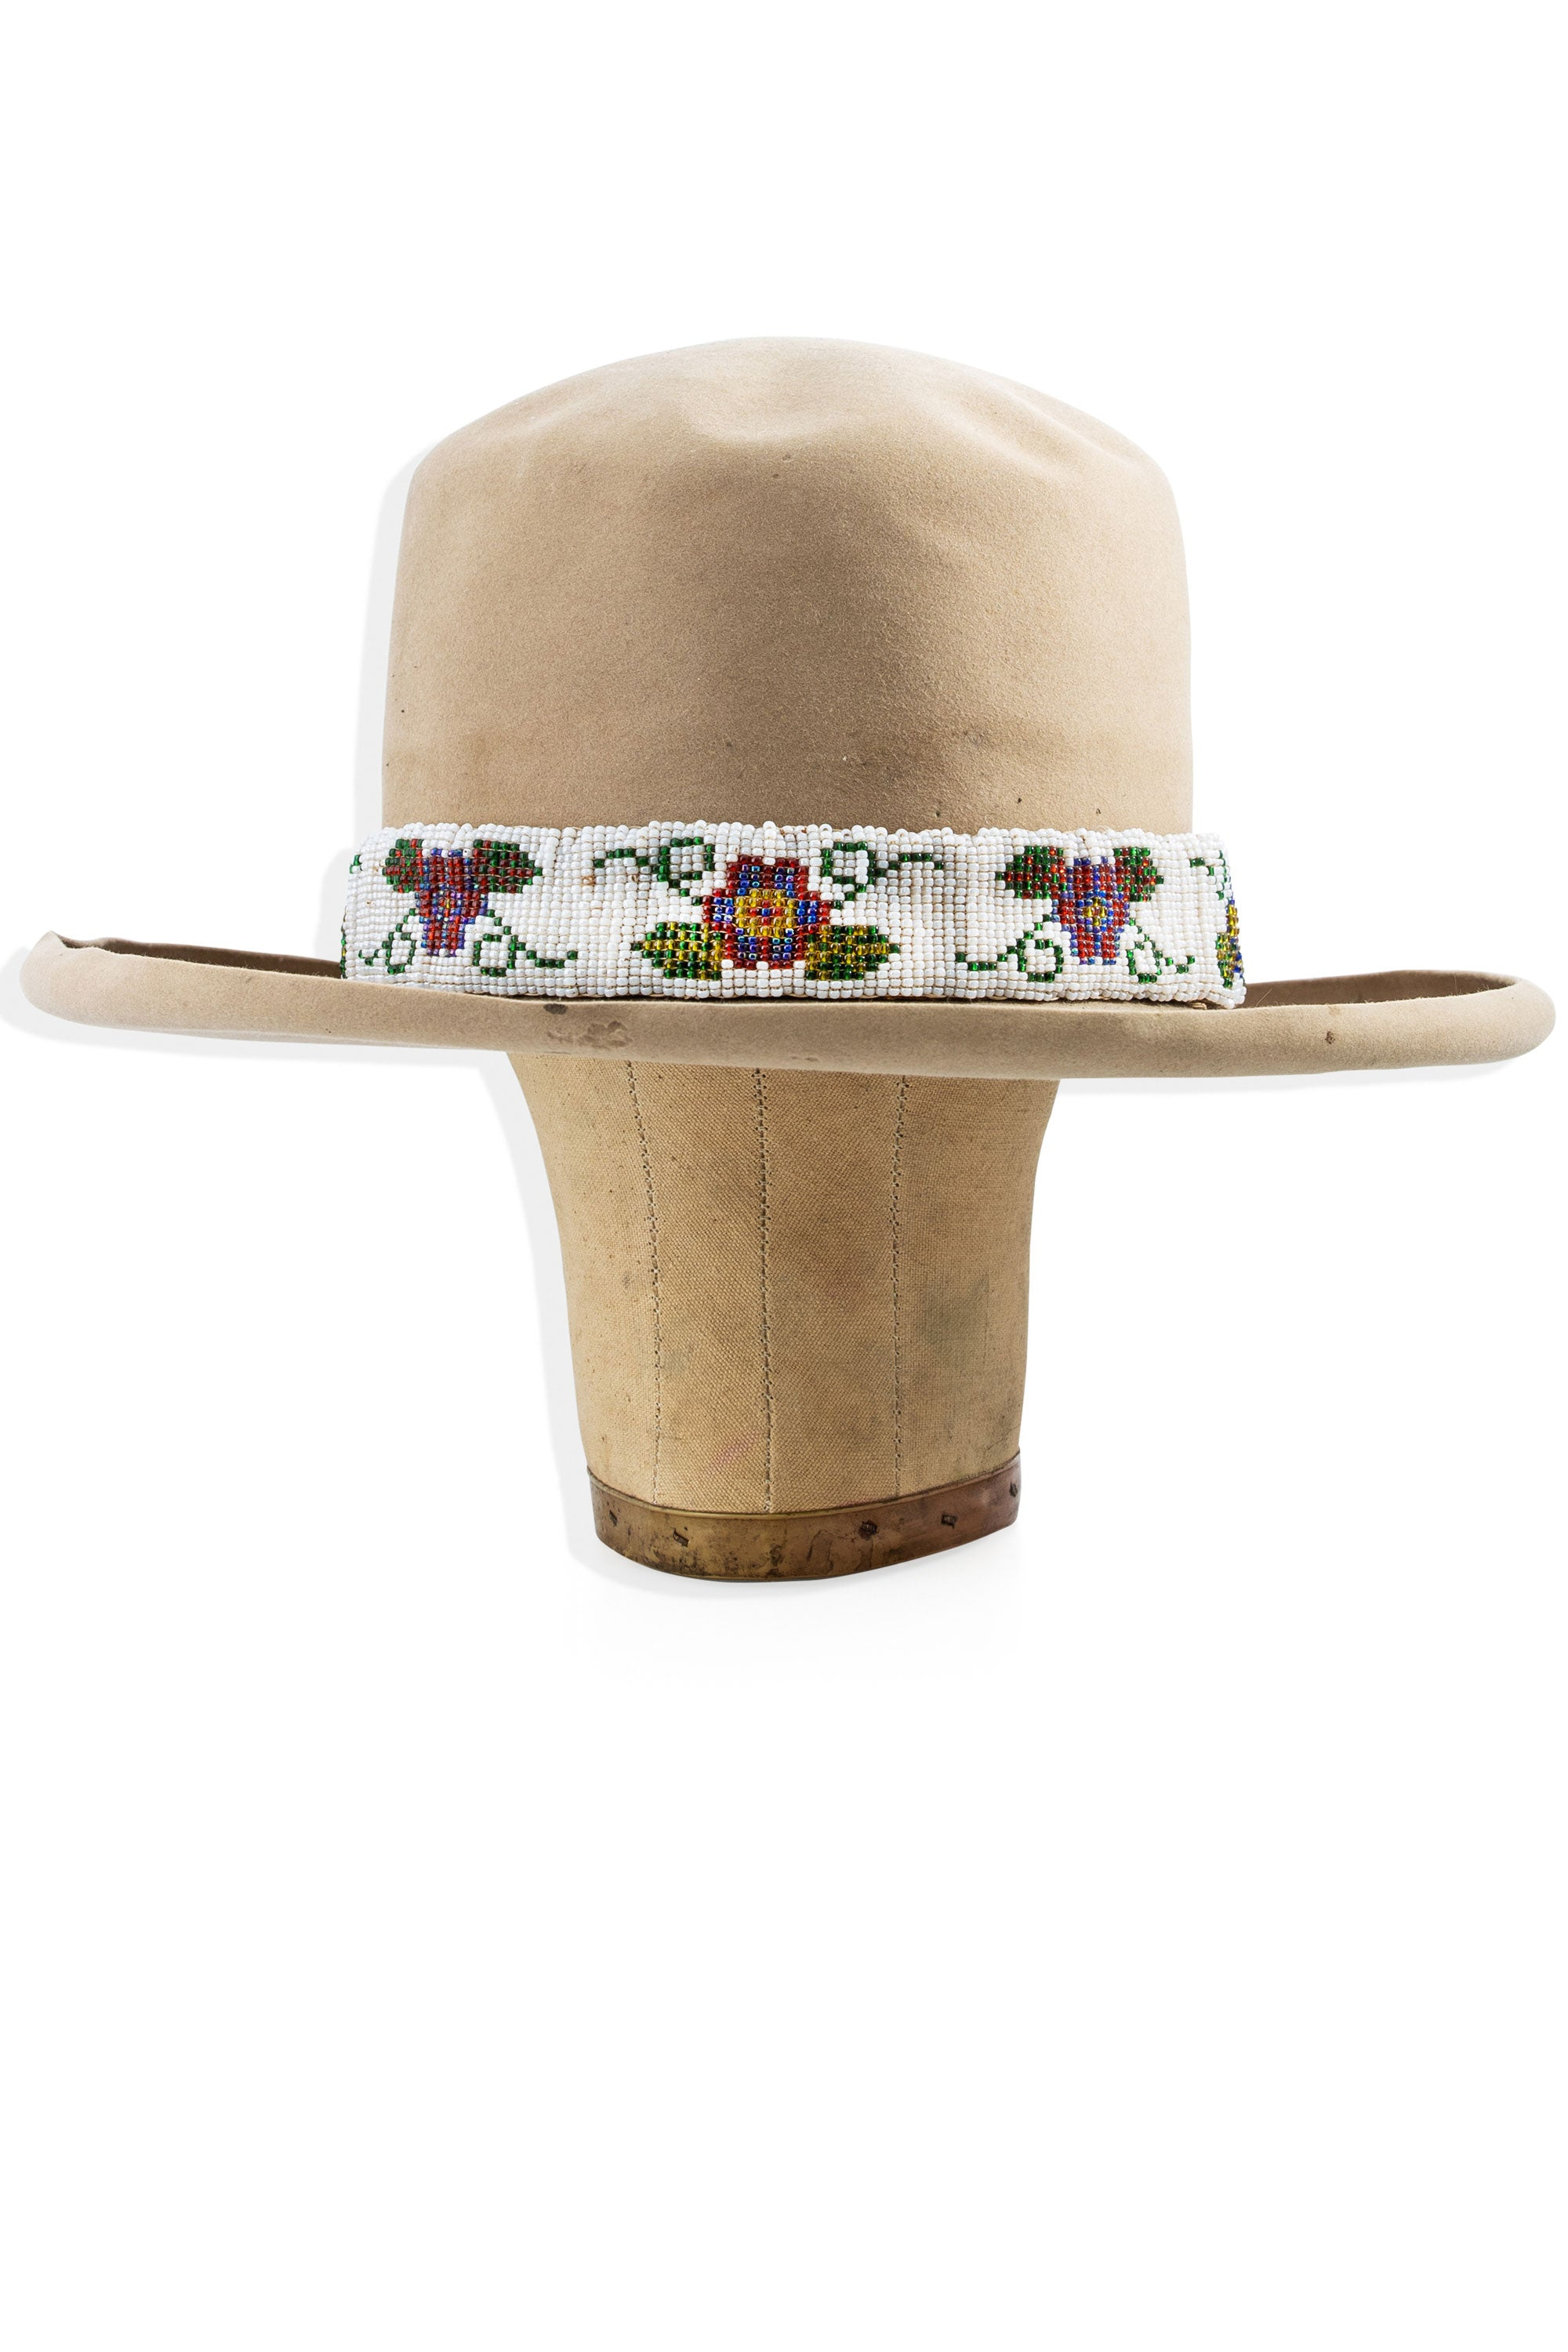 Hat Band, Beaded, Floral, Vintage '30s, 208